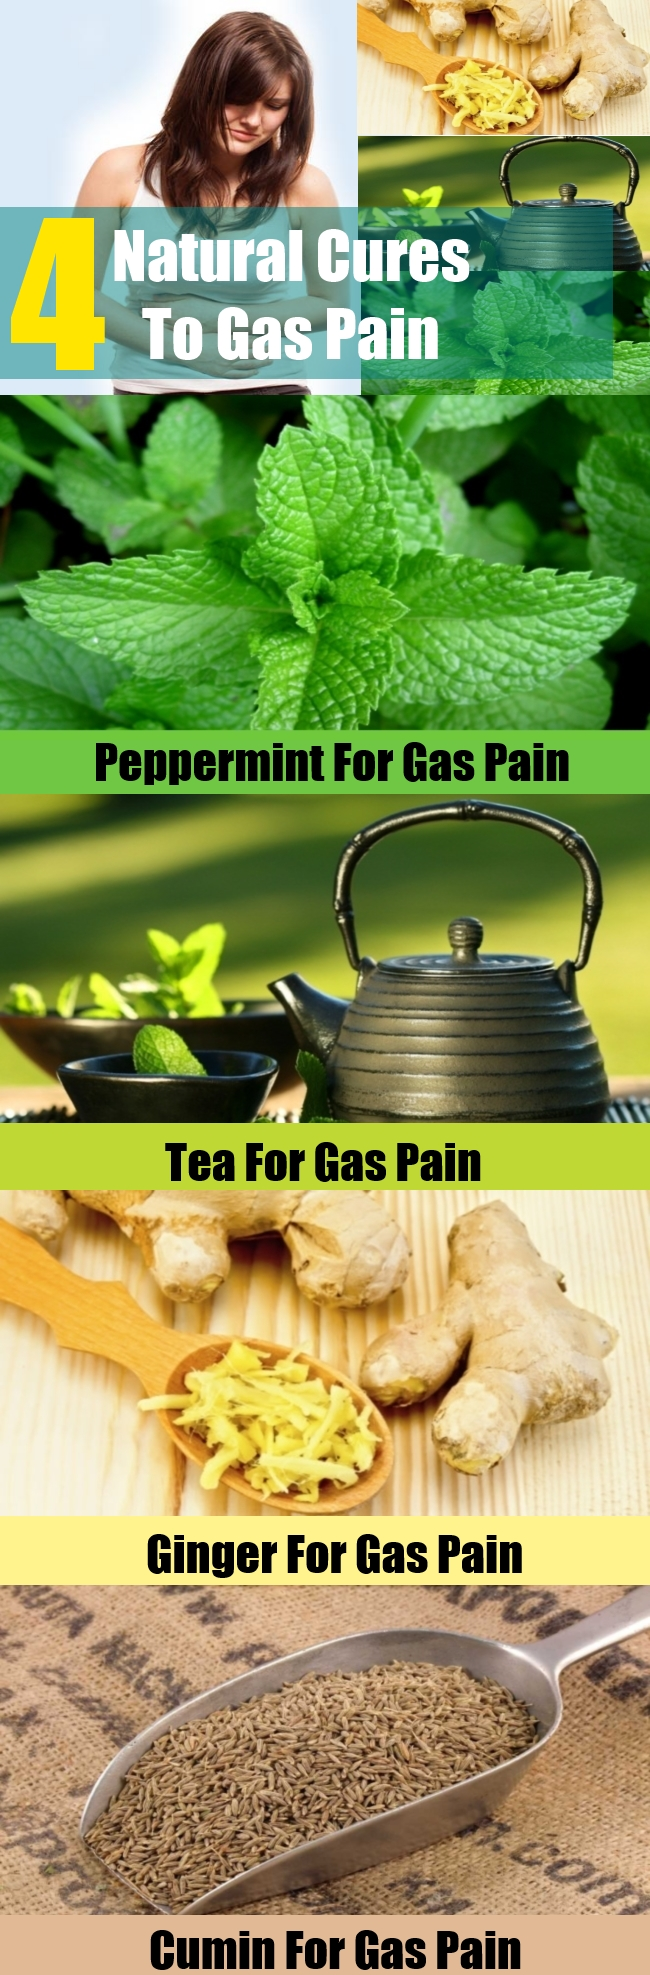 Natural Cures To Gas Pain